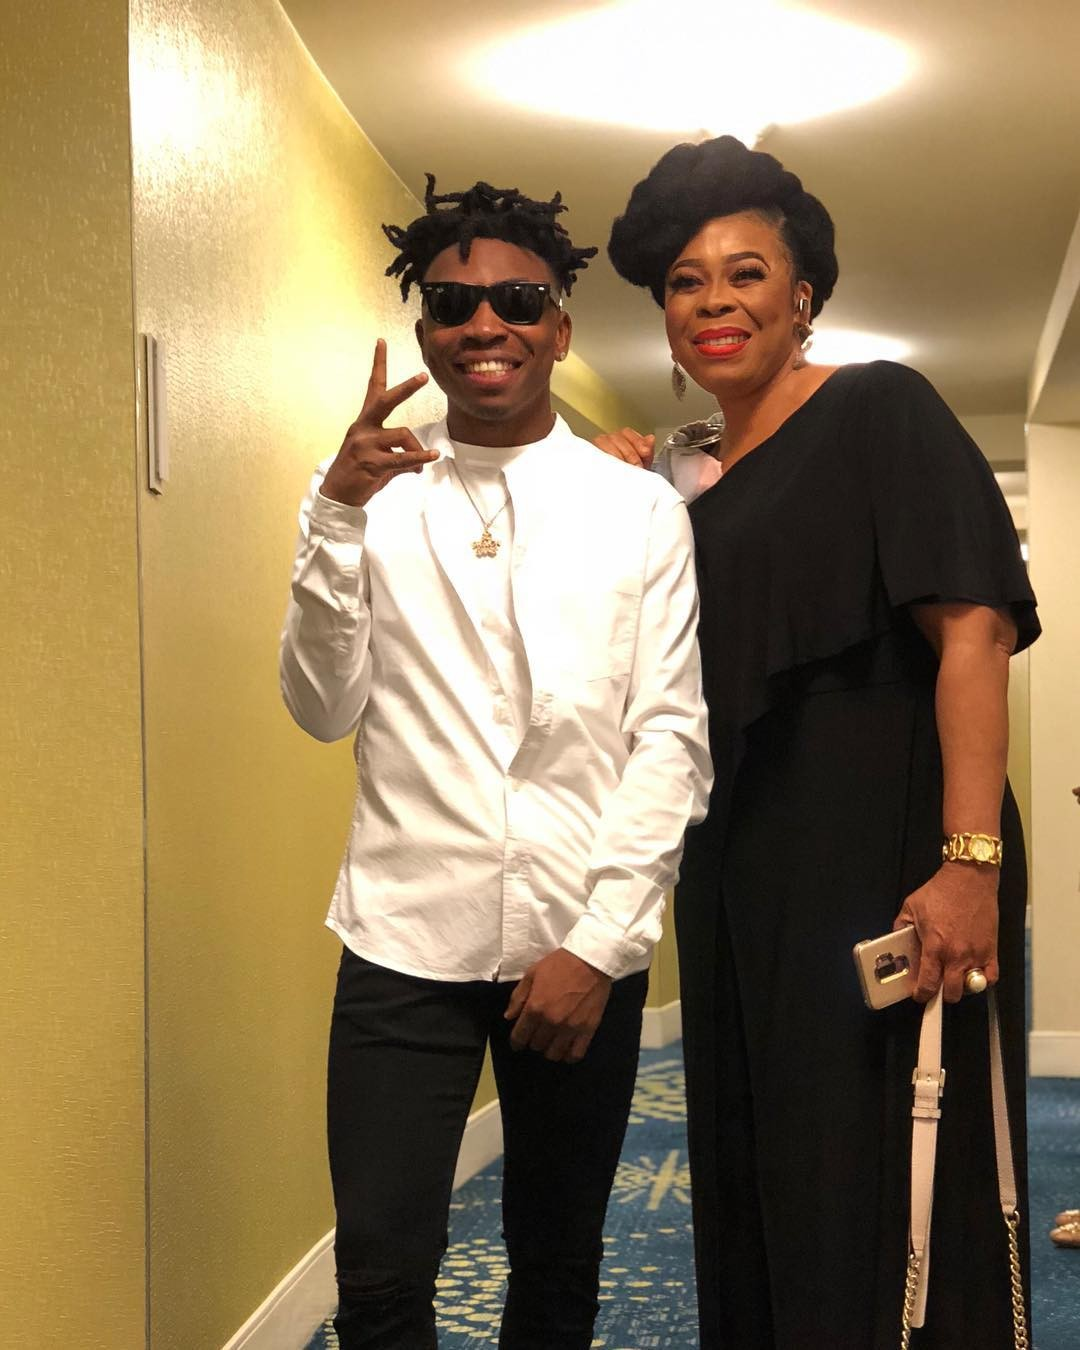 Mayorkun and his mother, Toyin Adewale reunite after 2 years apart